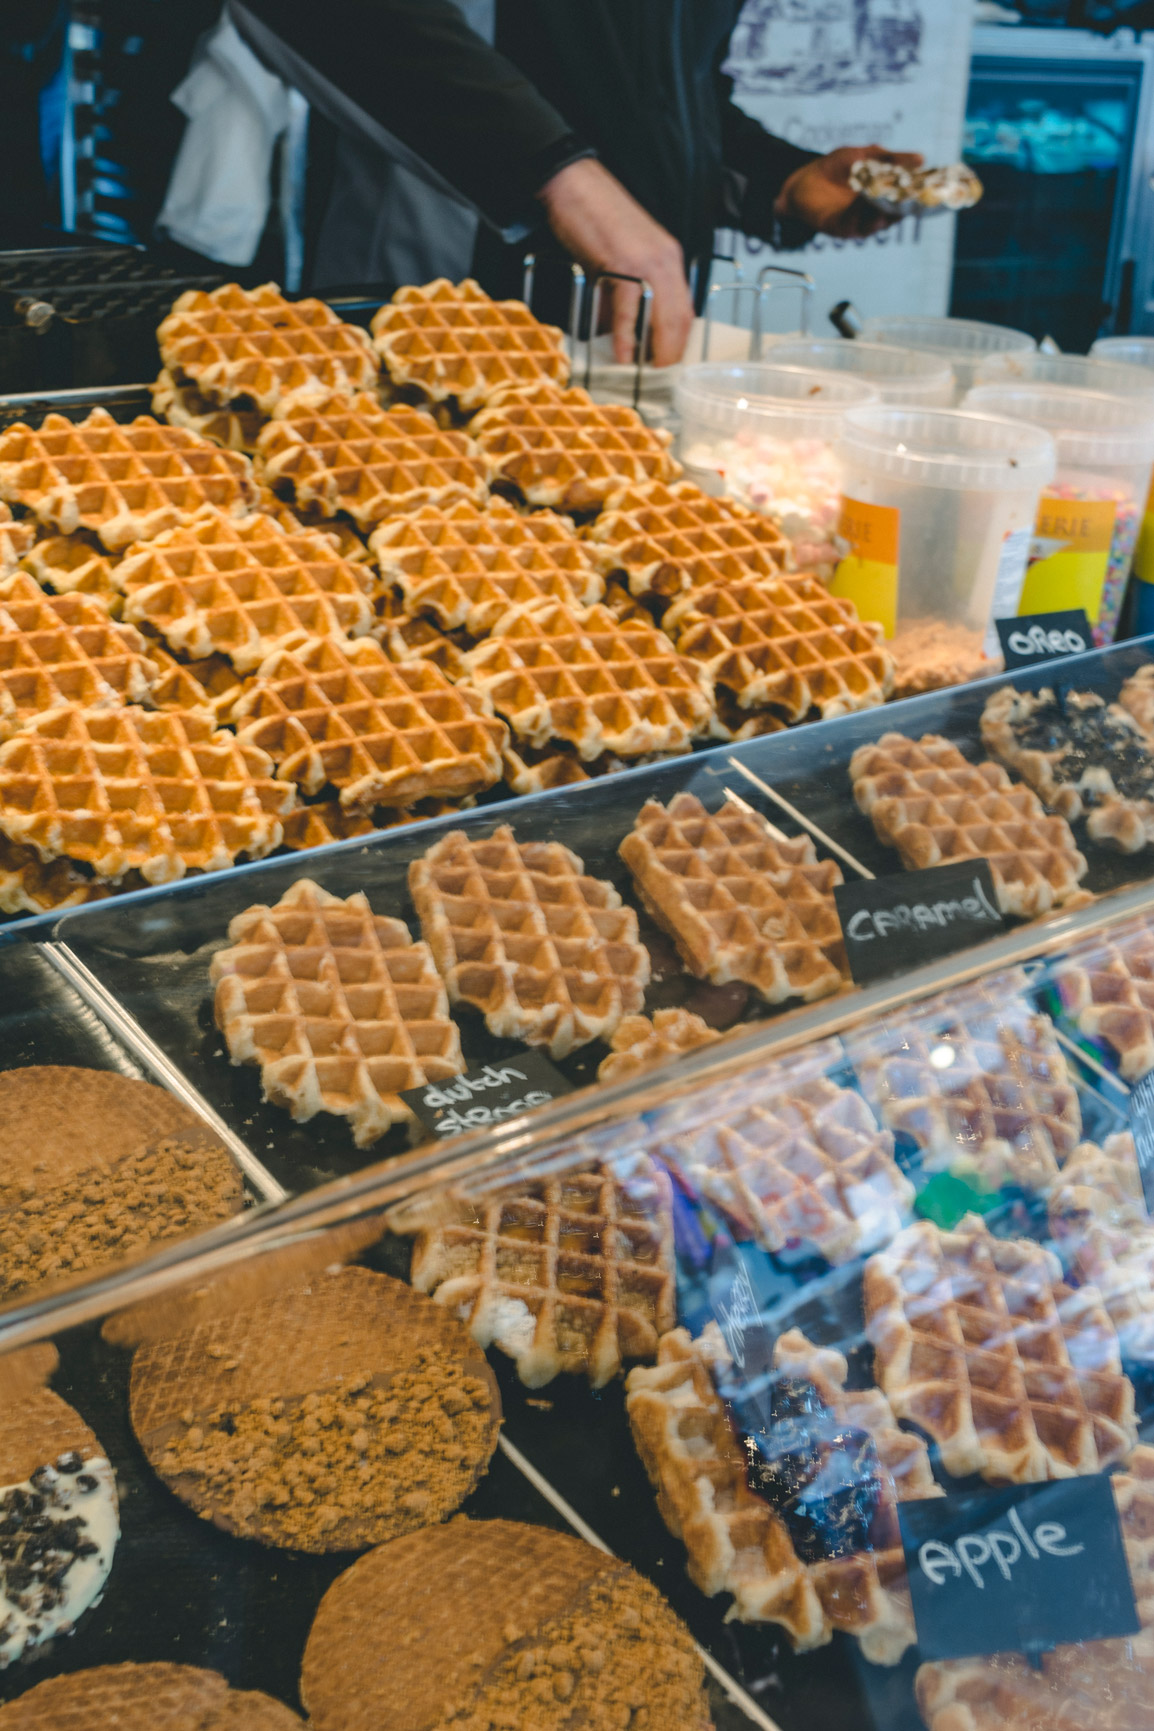 Dutch cuisine is know for different types of waffles all of them delicious